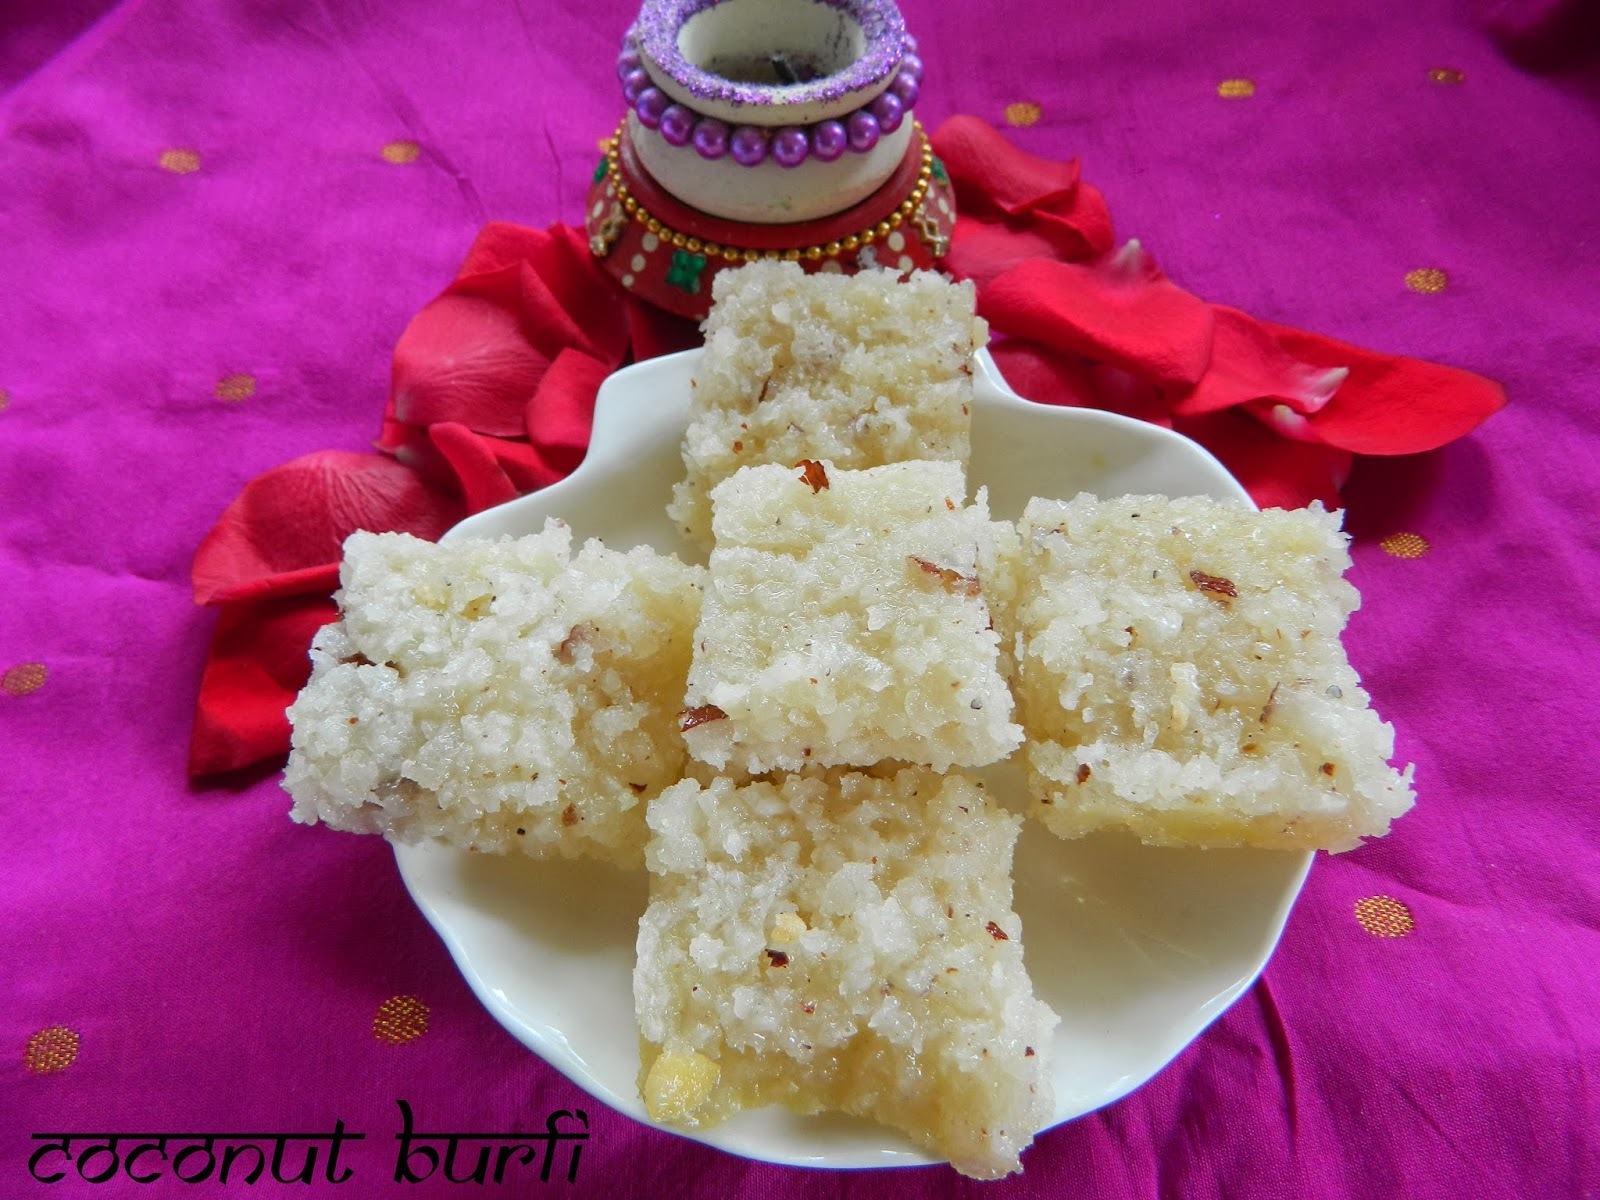 Coconut Burfi for the Diwali